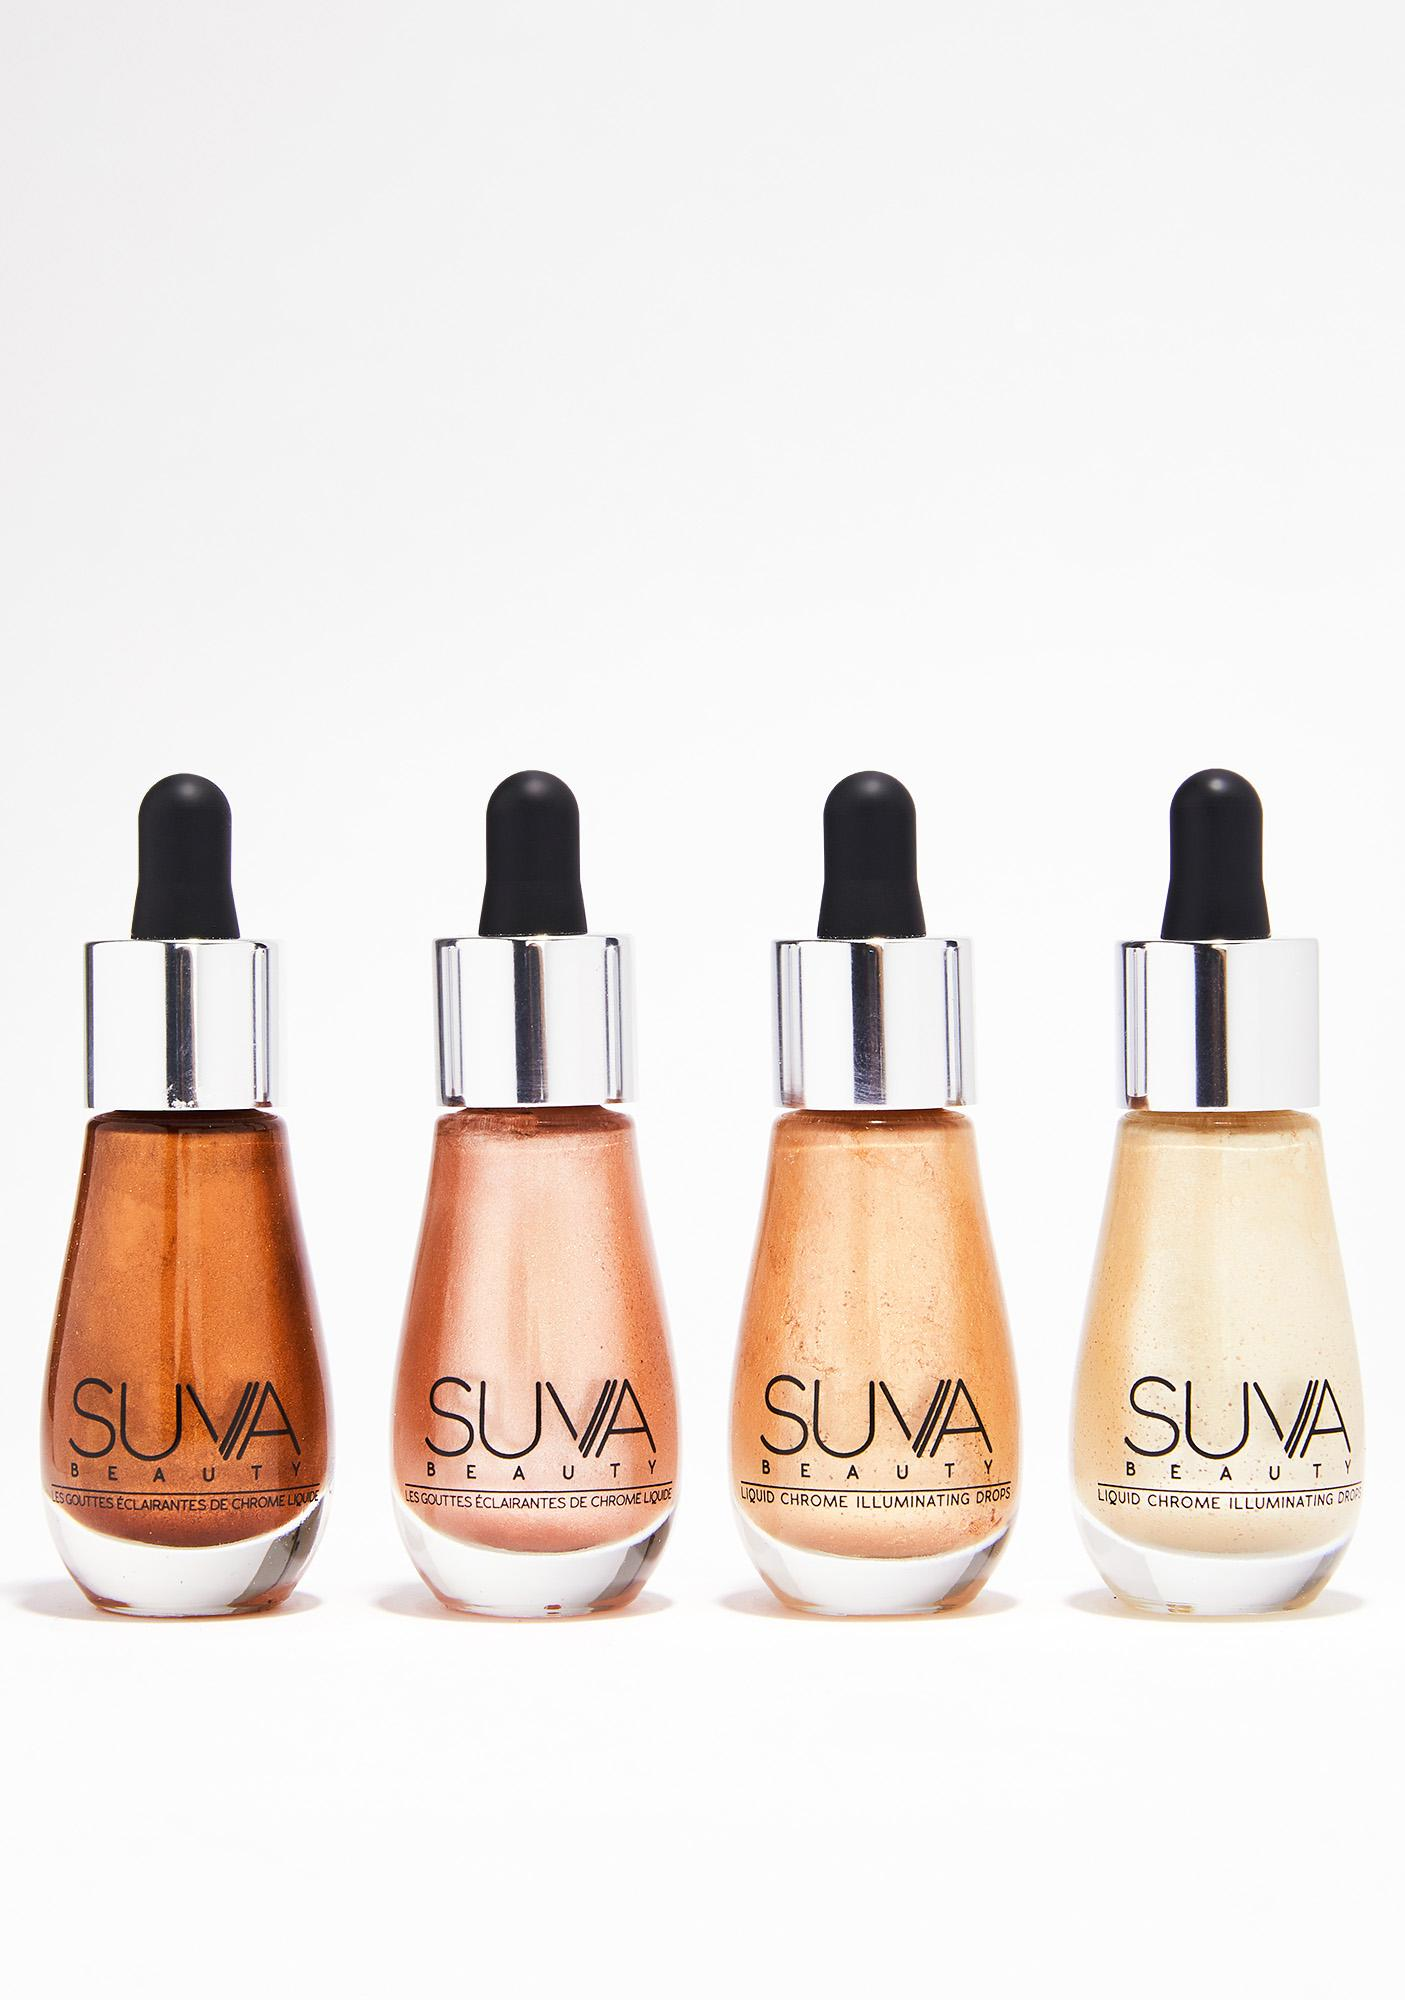 Queen Liquid Chrome by Suva Beauty